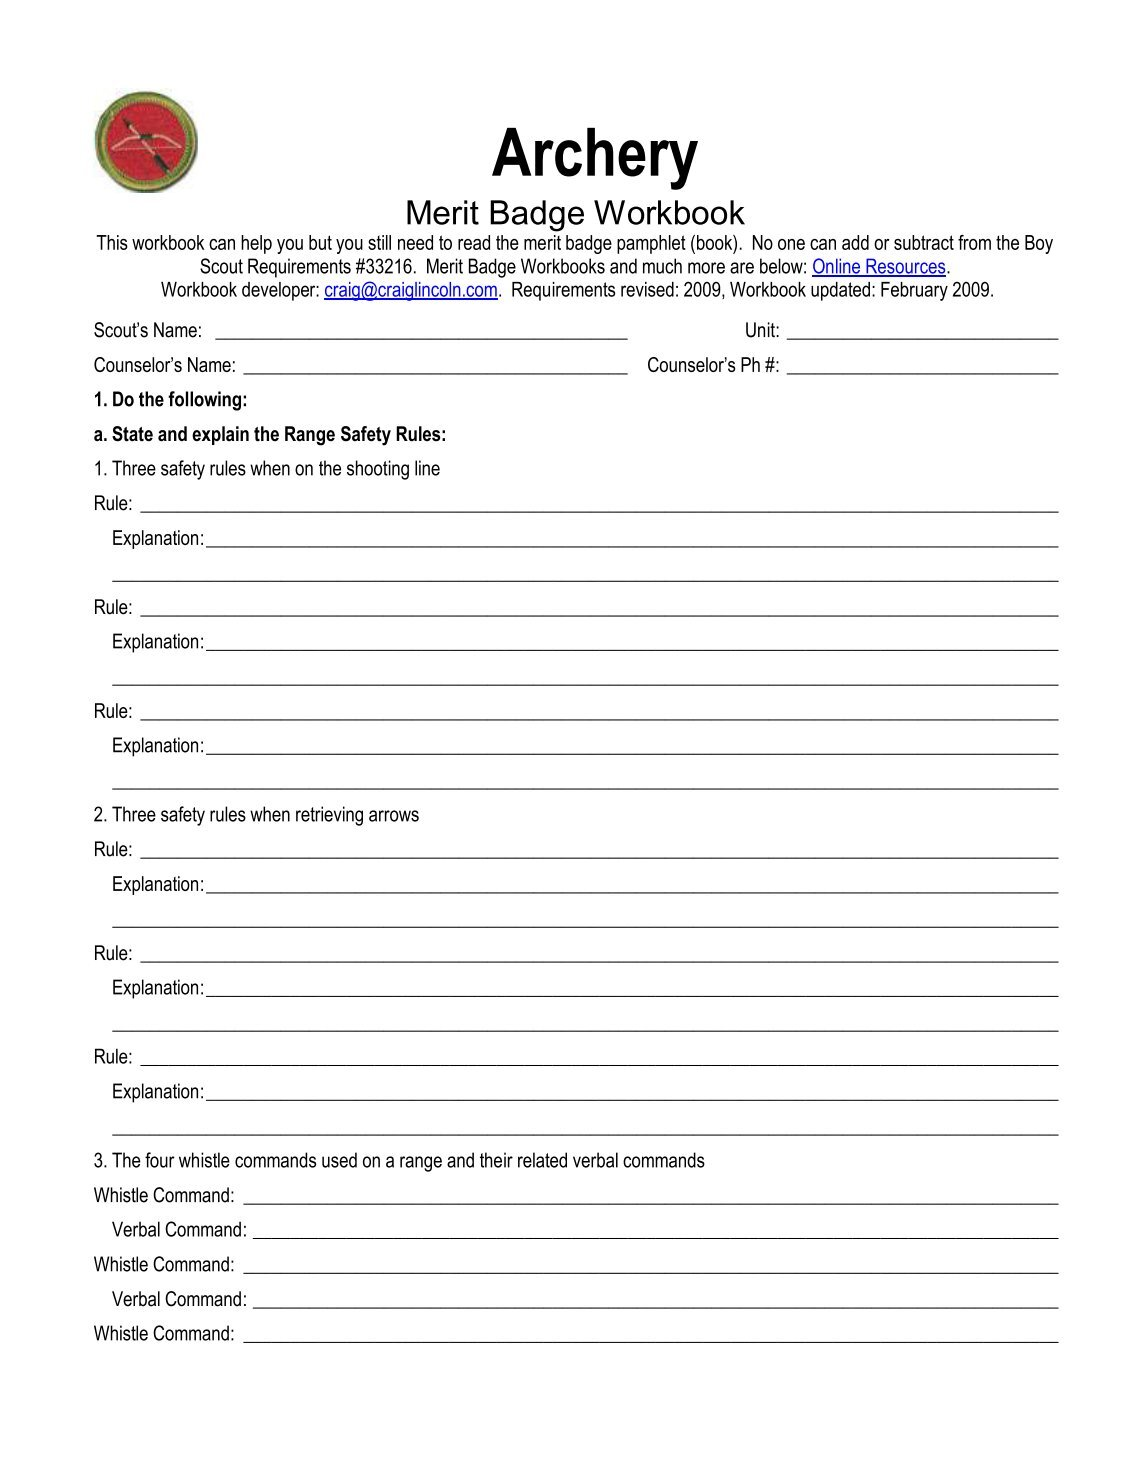 personal management merit badge worksheet - laveyla.com